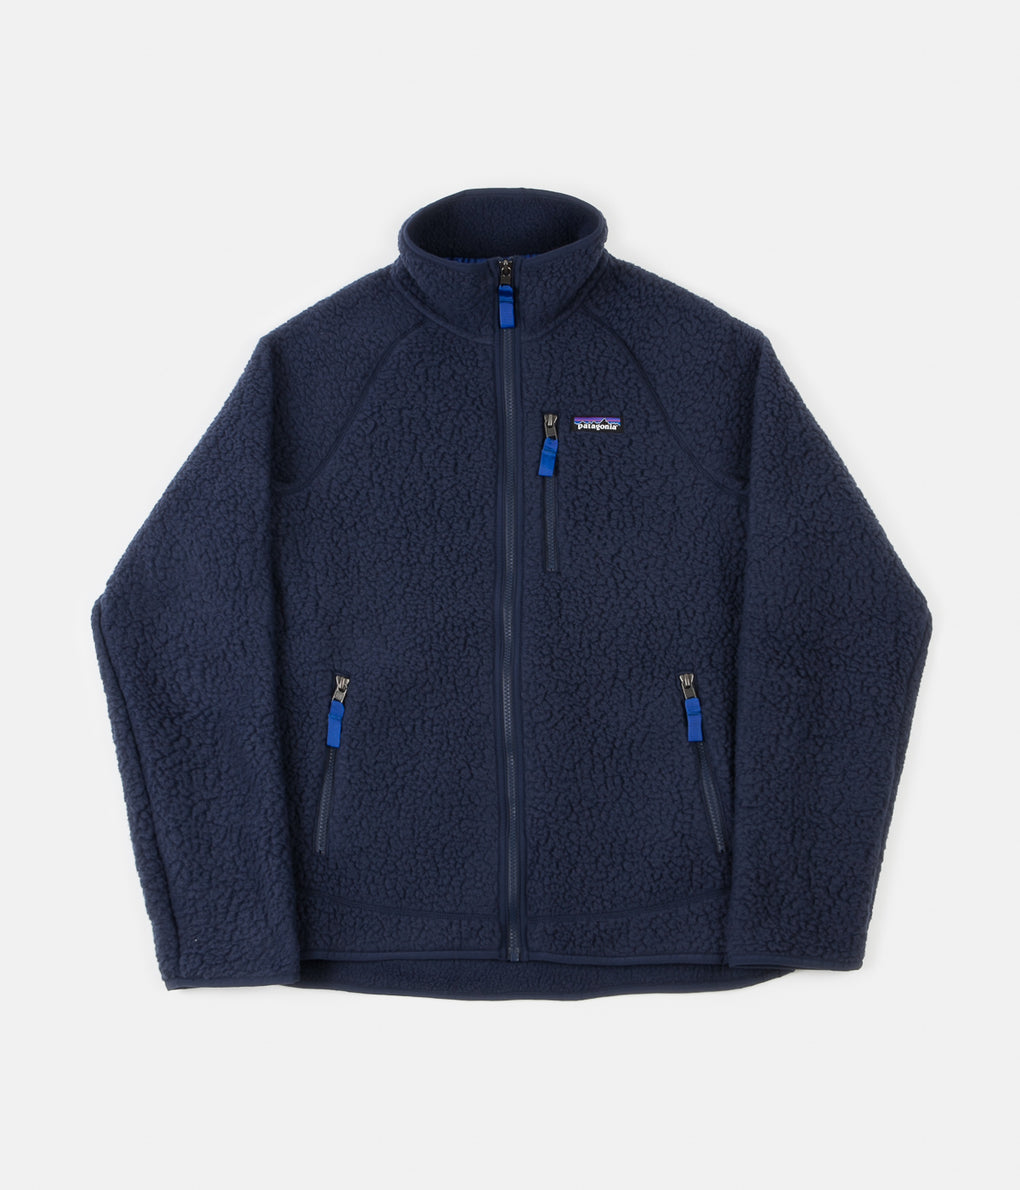 Patagonia Retro Pile Fleece Jacket - Neo Navy